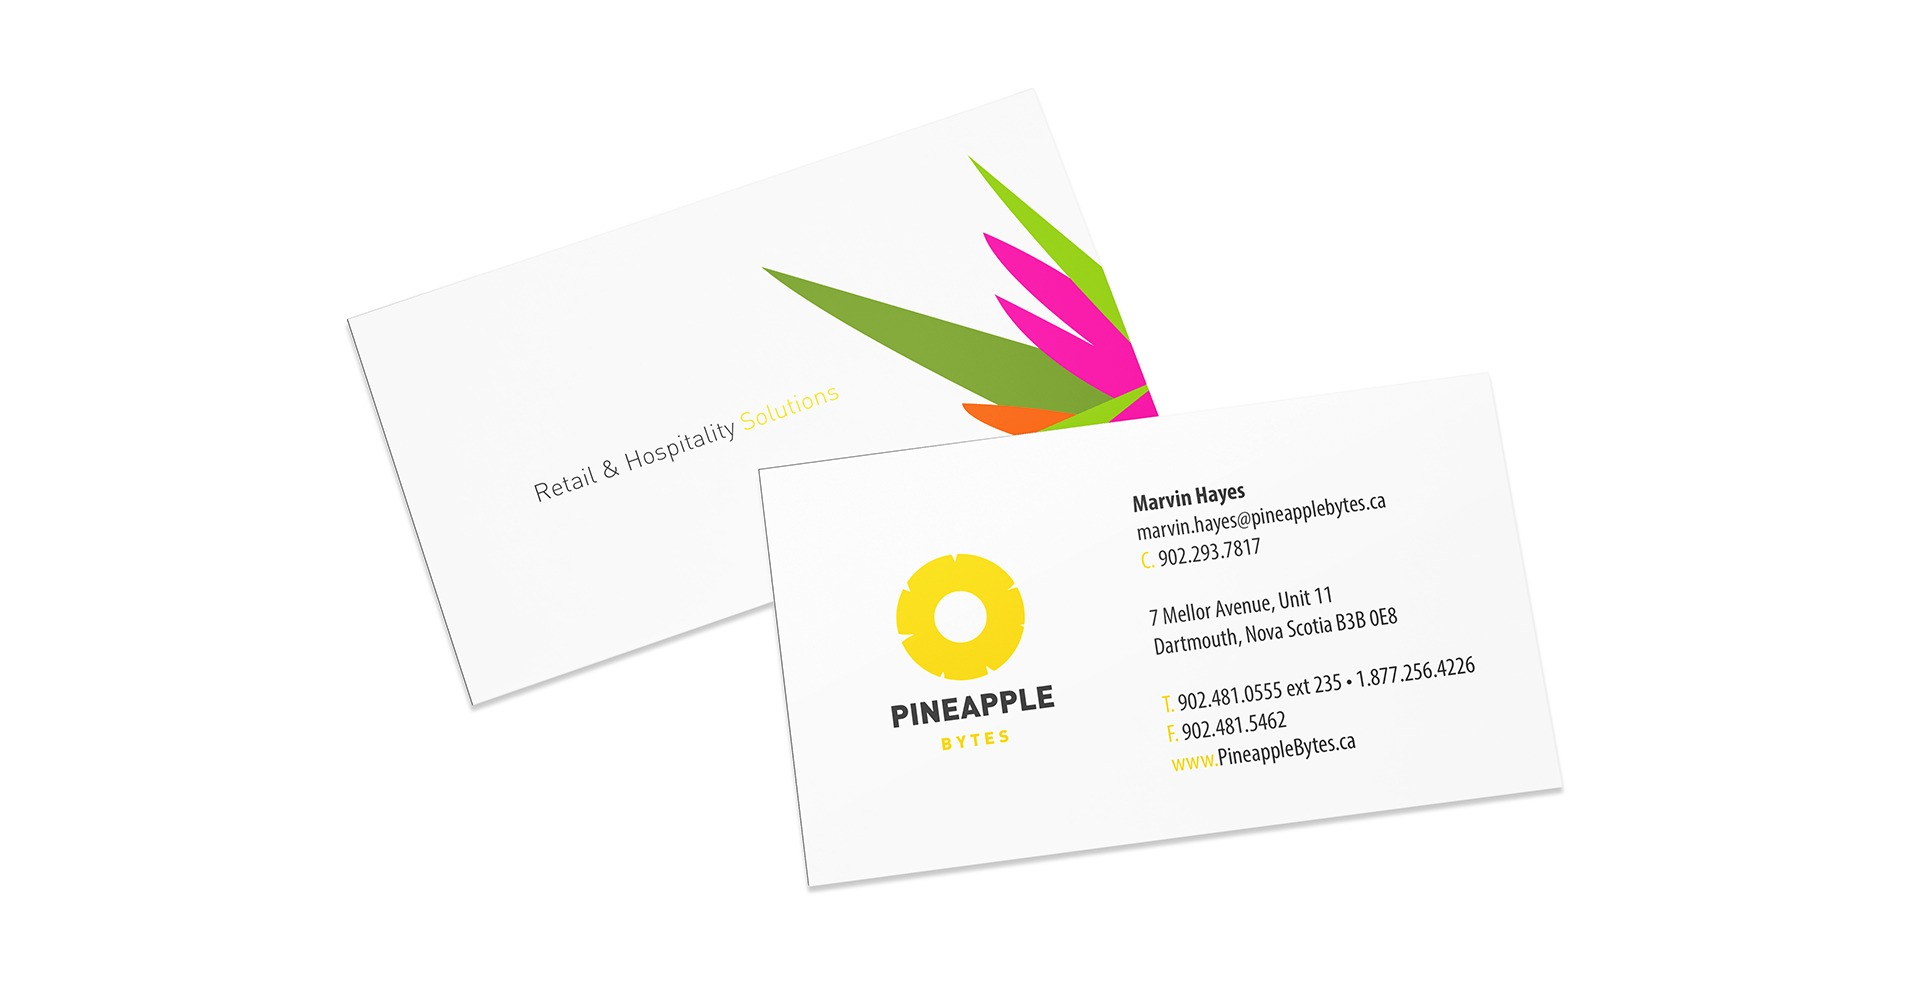 Pineapple Bytes business card design